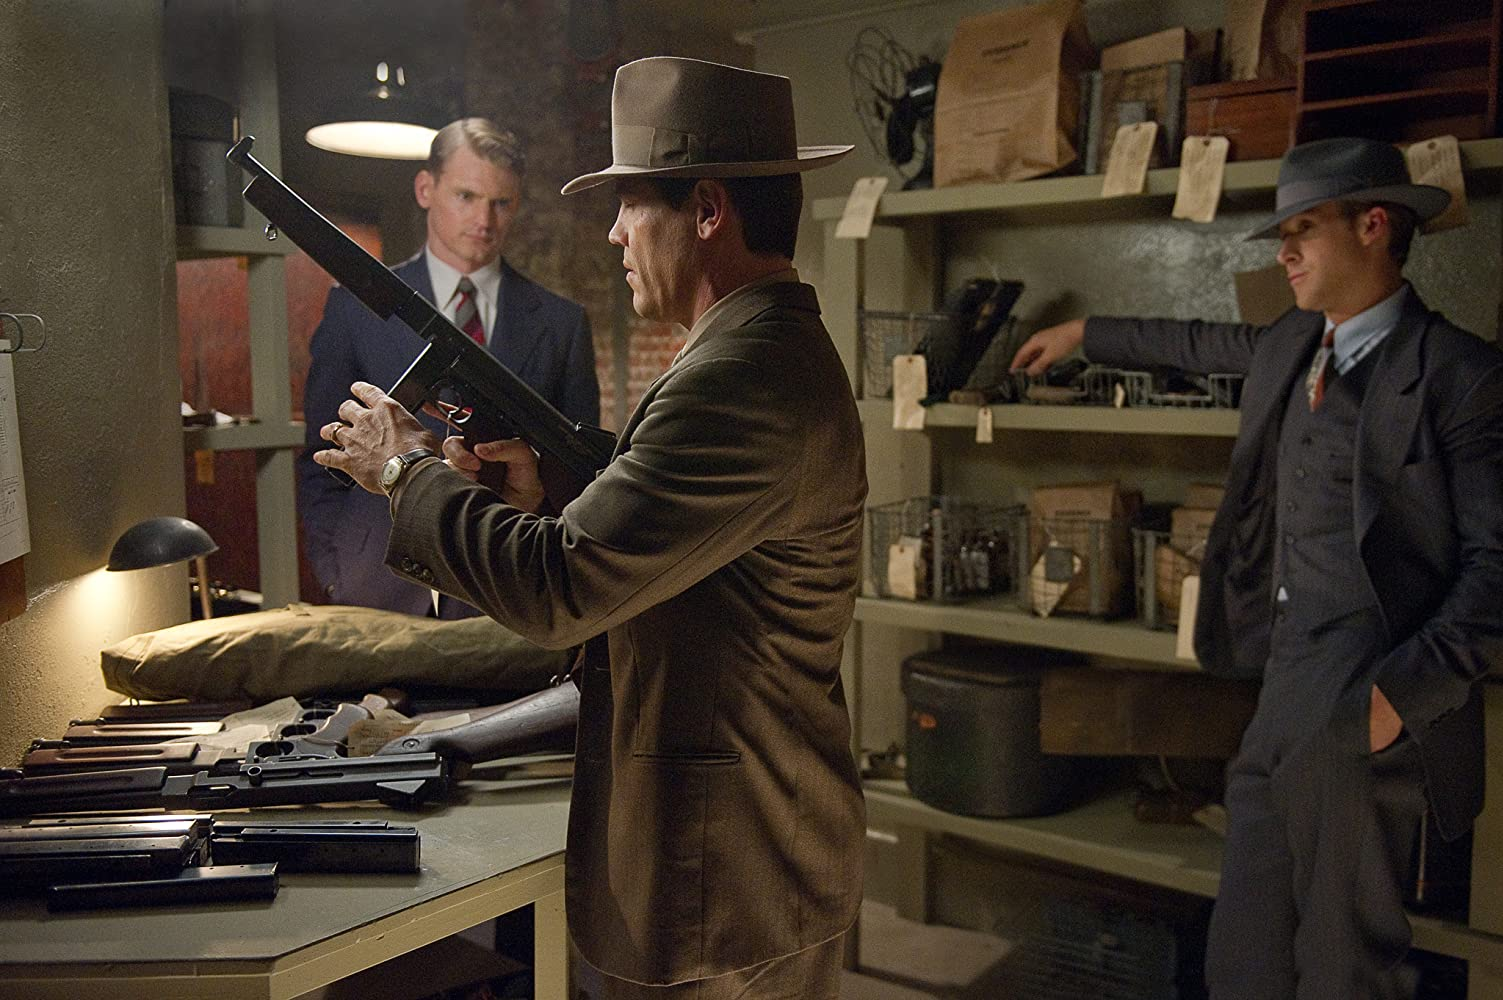 Josh Brolin, Ryan Gosling, and Josh Pence in Gangster Squad (2013)